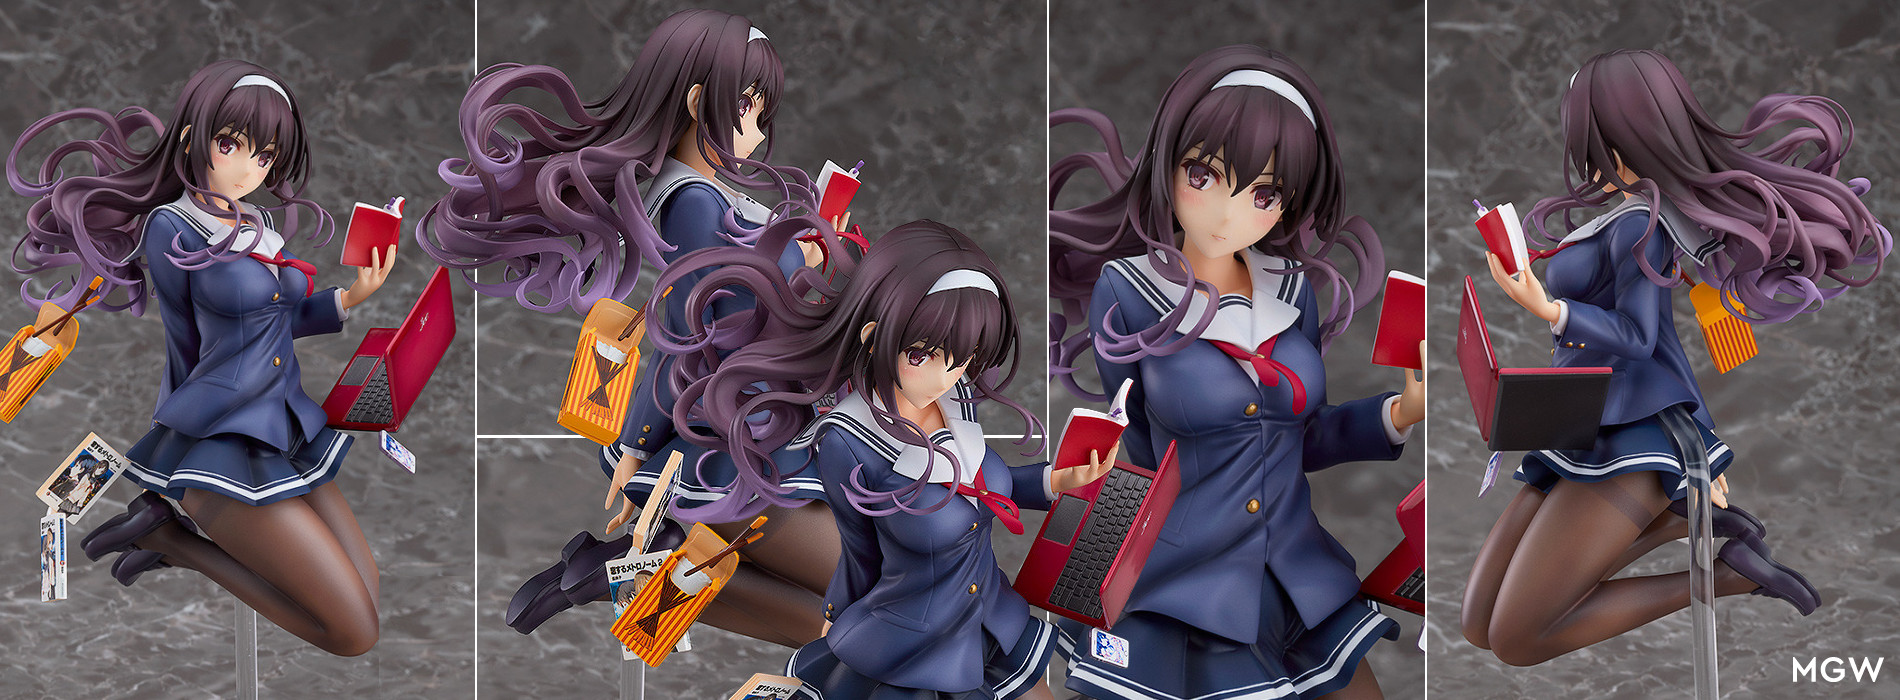 Utaha Kasumigaoka by Max Factory from How to Raise a Boring Girlfriend